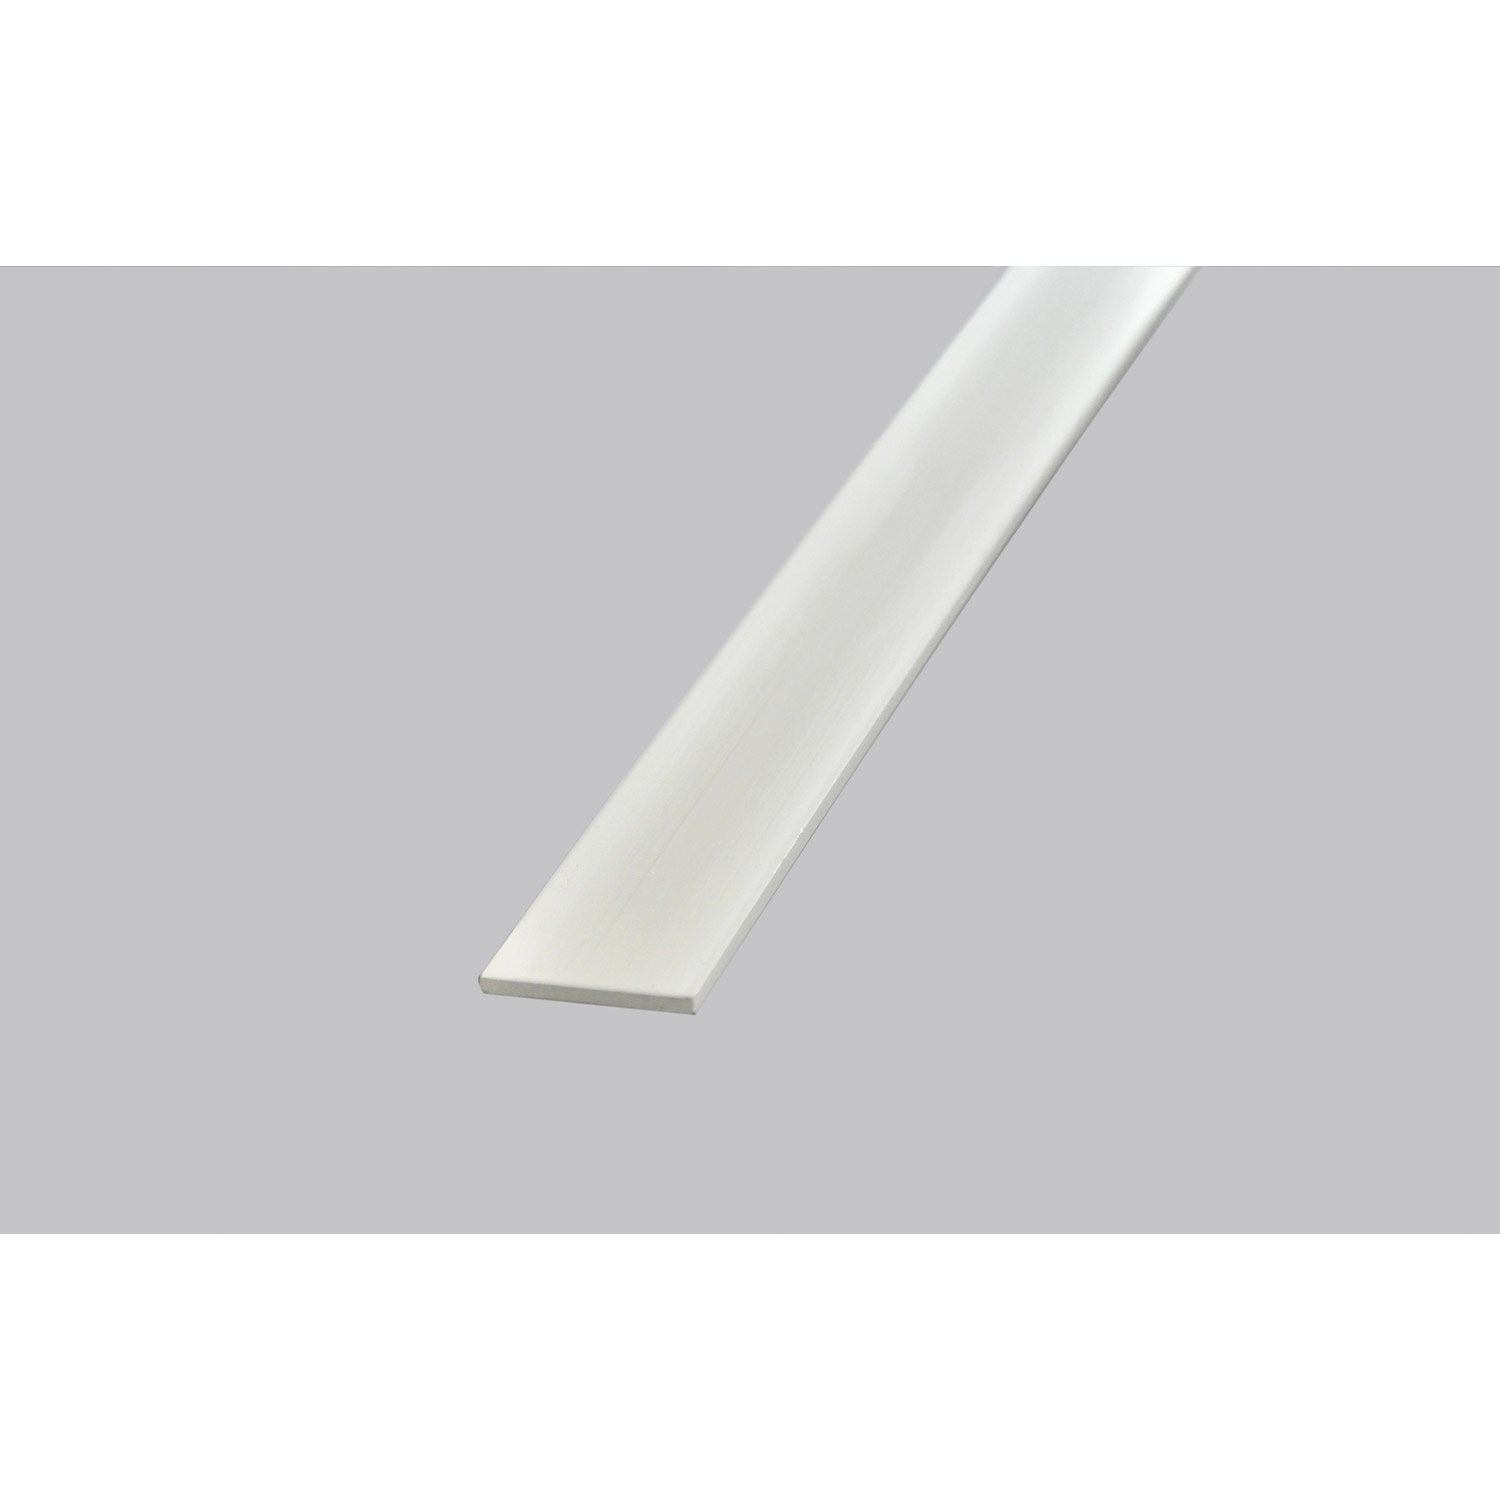 Champlat en pvc blanc long 250cm section 40x3mm leroy merlin - Canisse pvc leroy merlin ...